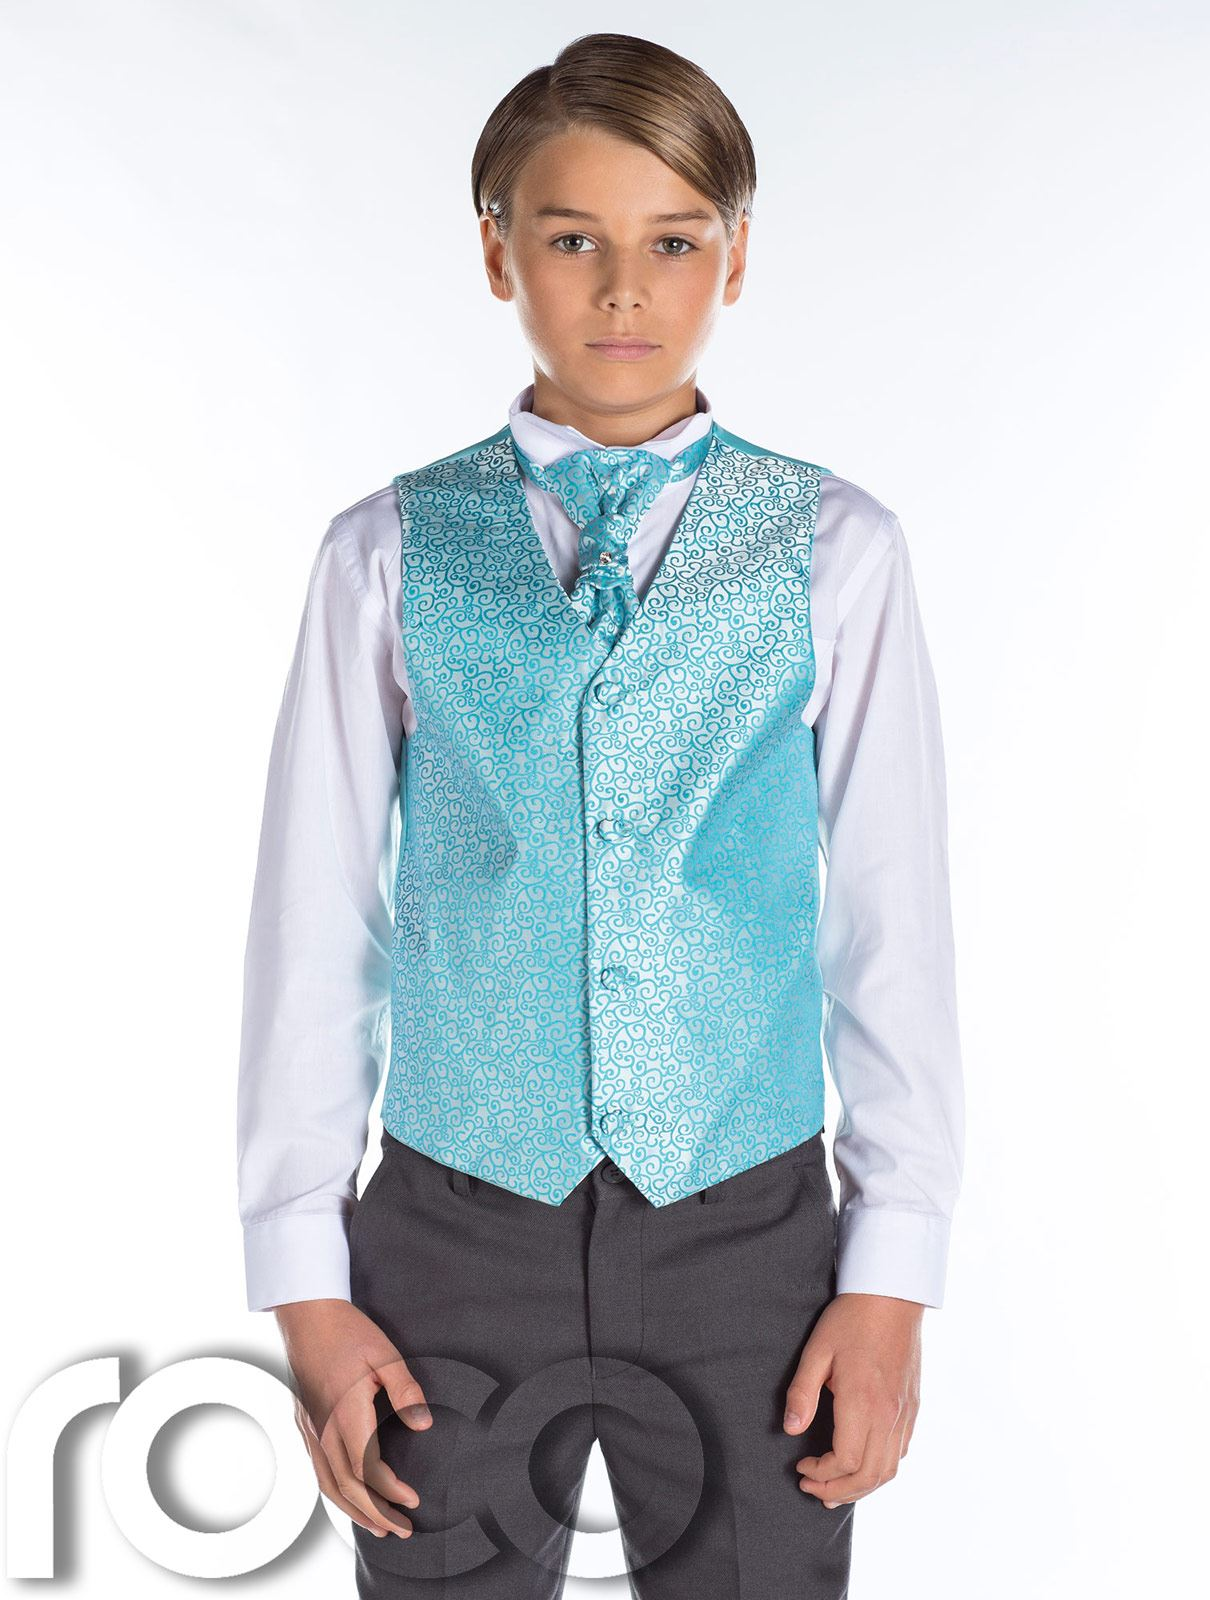 Grey Tail Suit Boys Wedding Outfits Prom Suit Page Boy Suit Boys Grey Suit | eBay